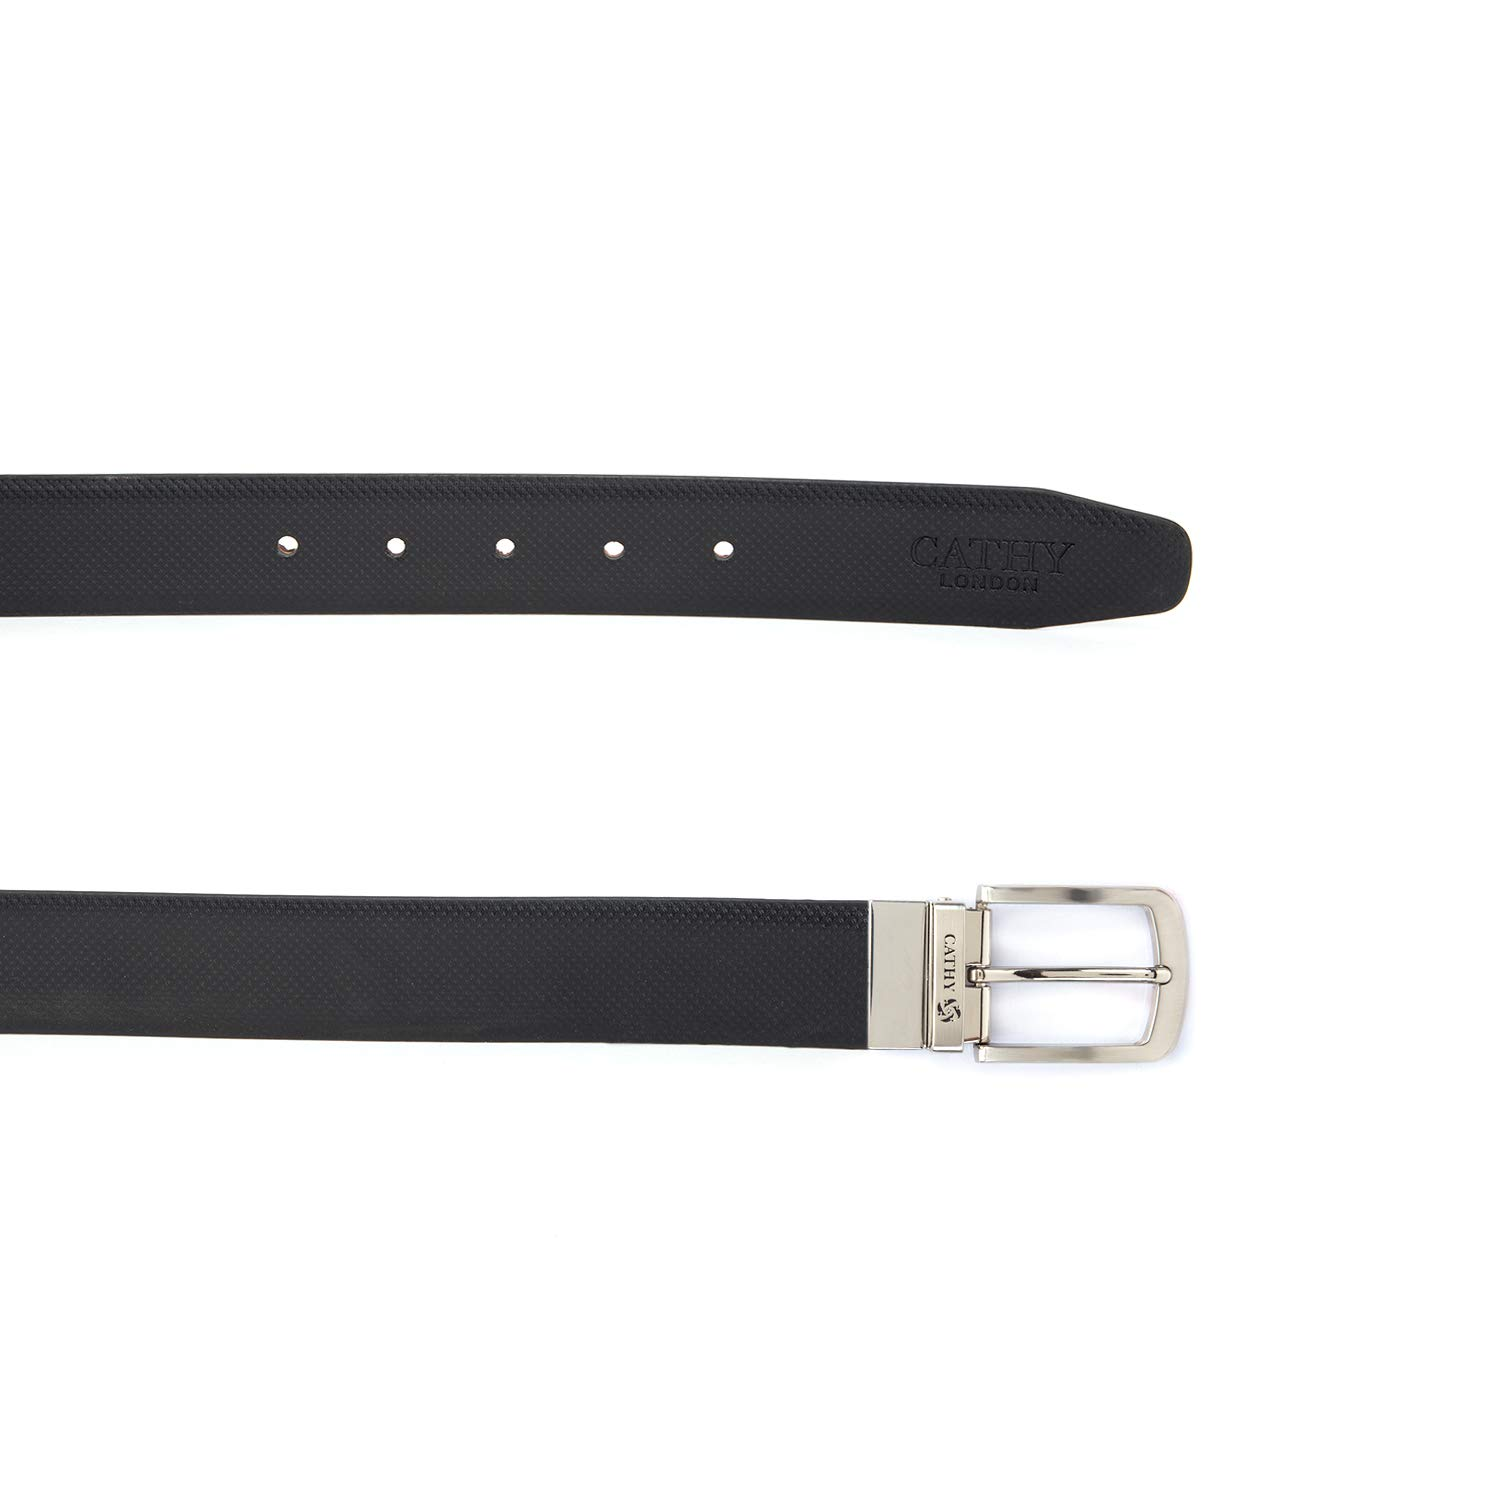 Cathy London Cut-to-Size Reversible PU Leather Belt Black,Brown